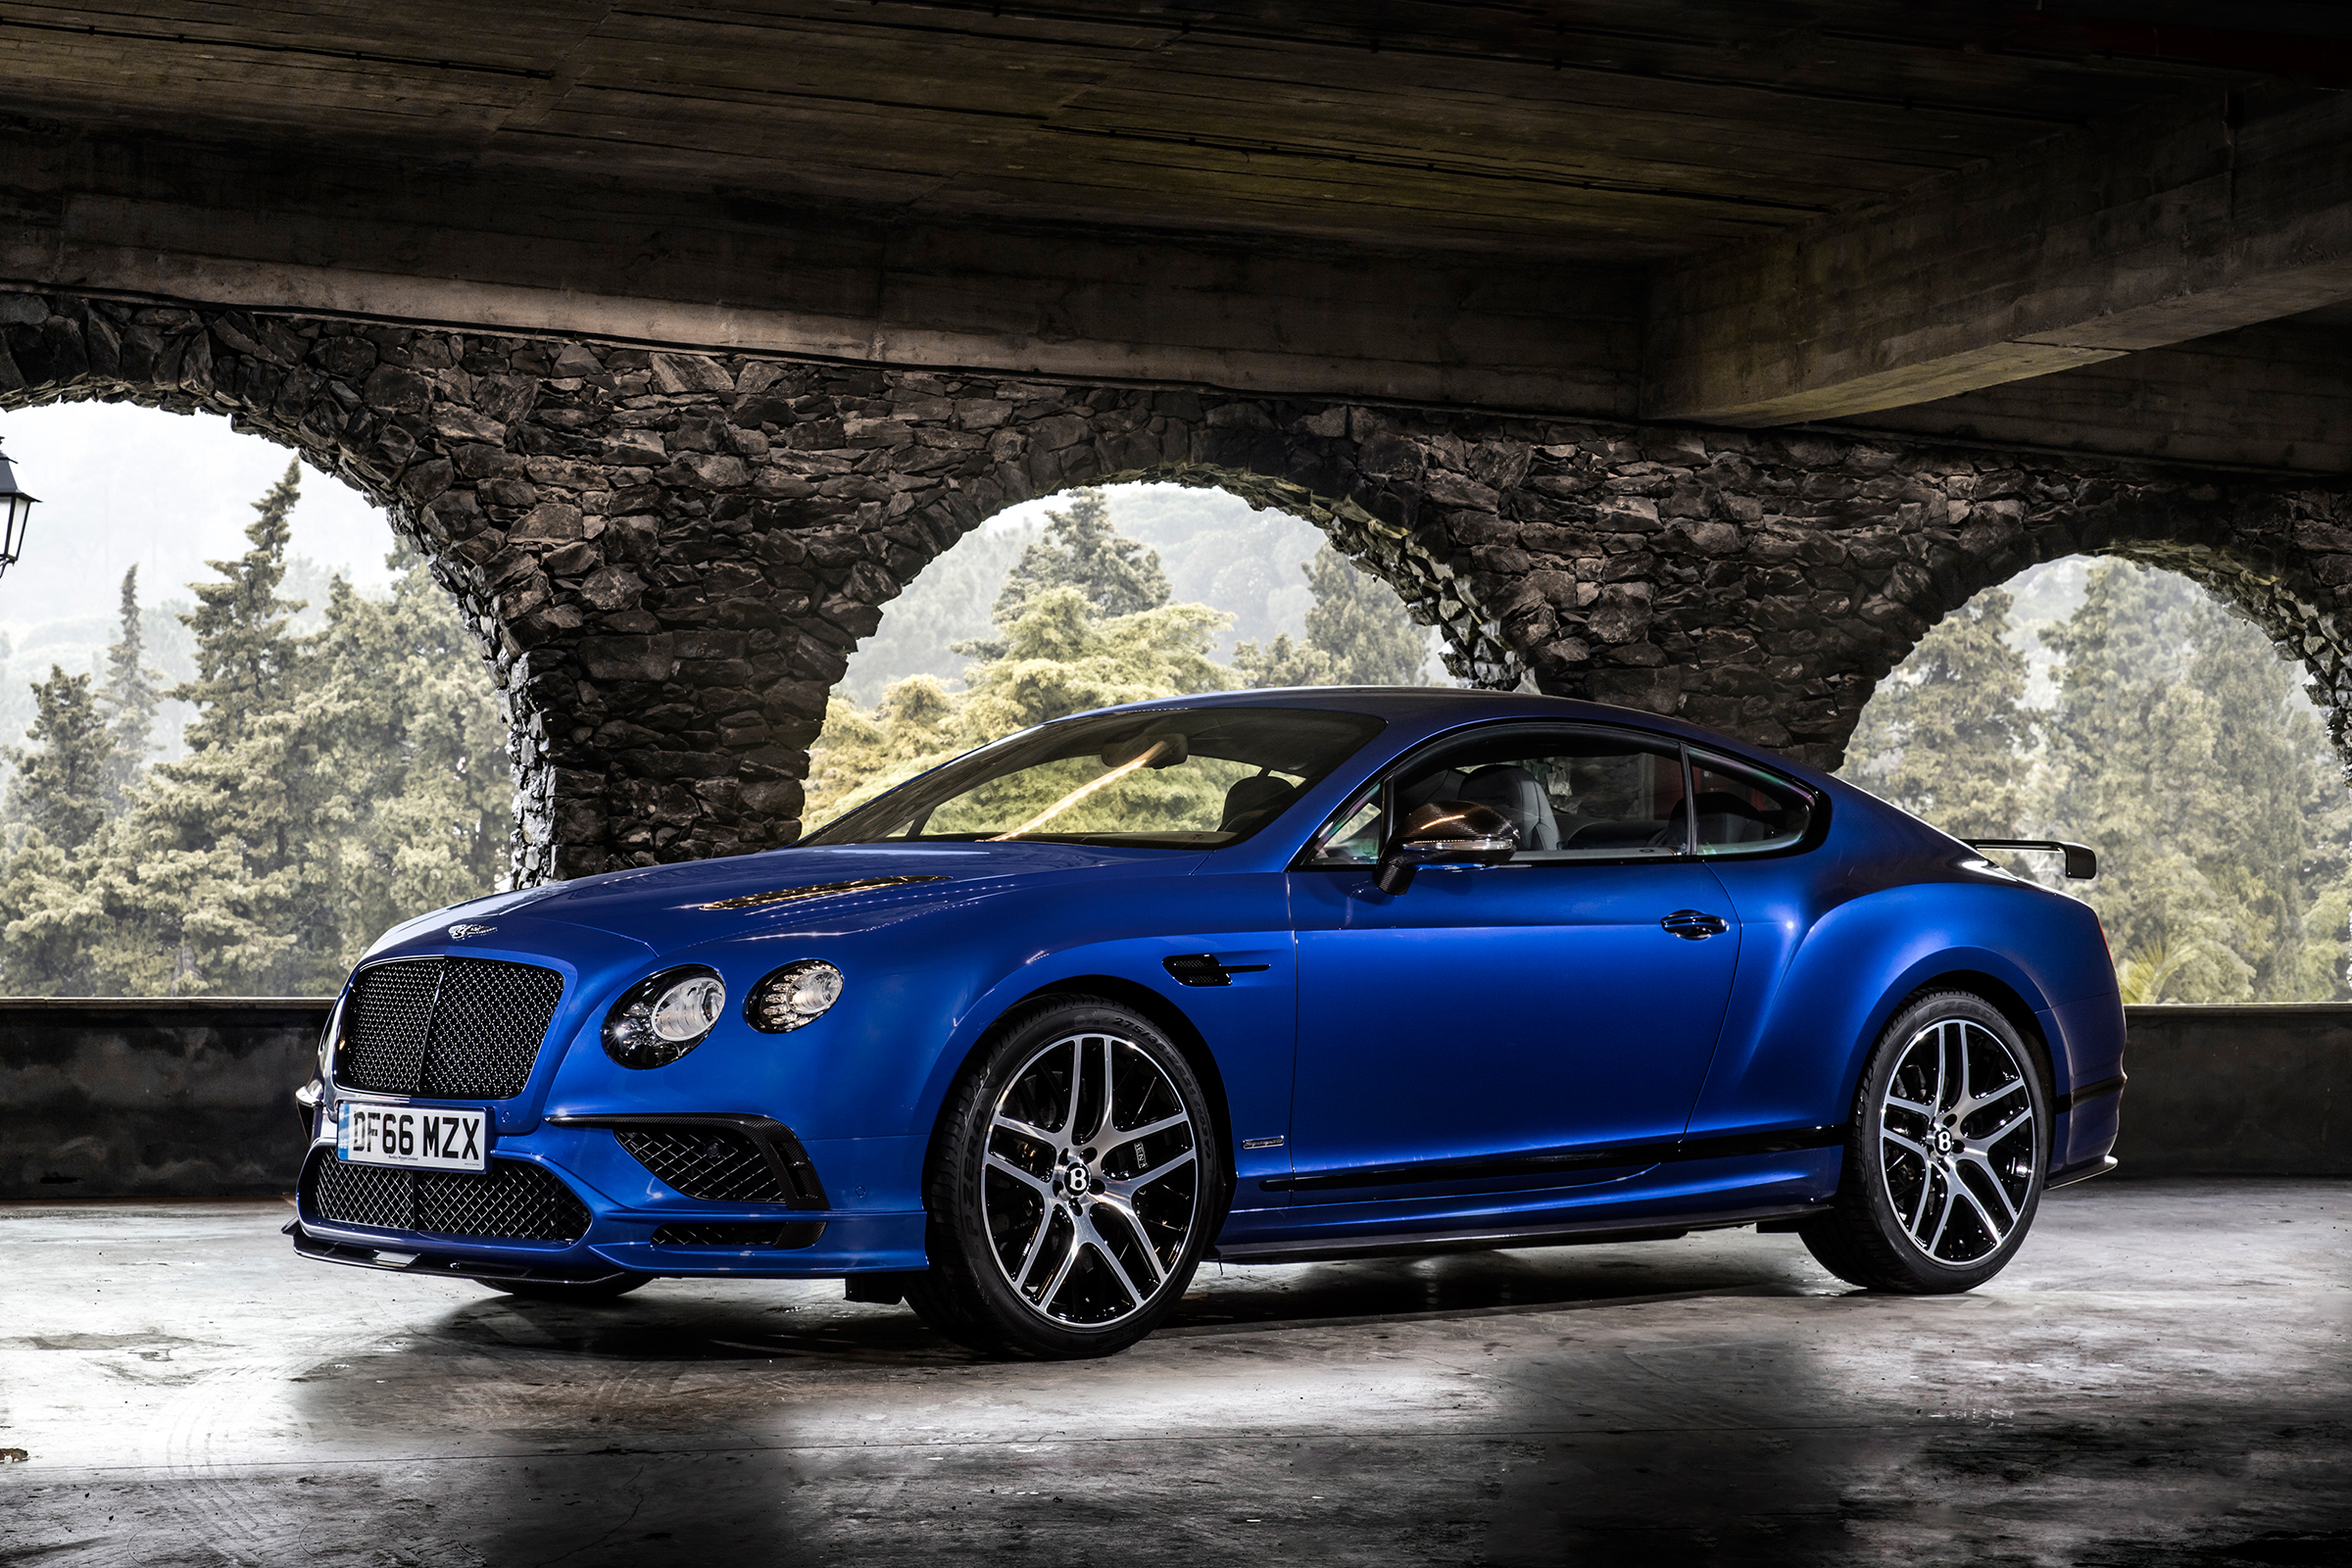 2017 Bentley Continental Supersports Blue Exterior (Photo 14 of 31)